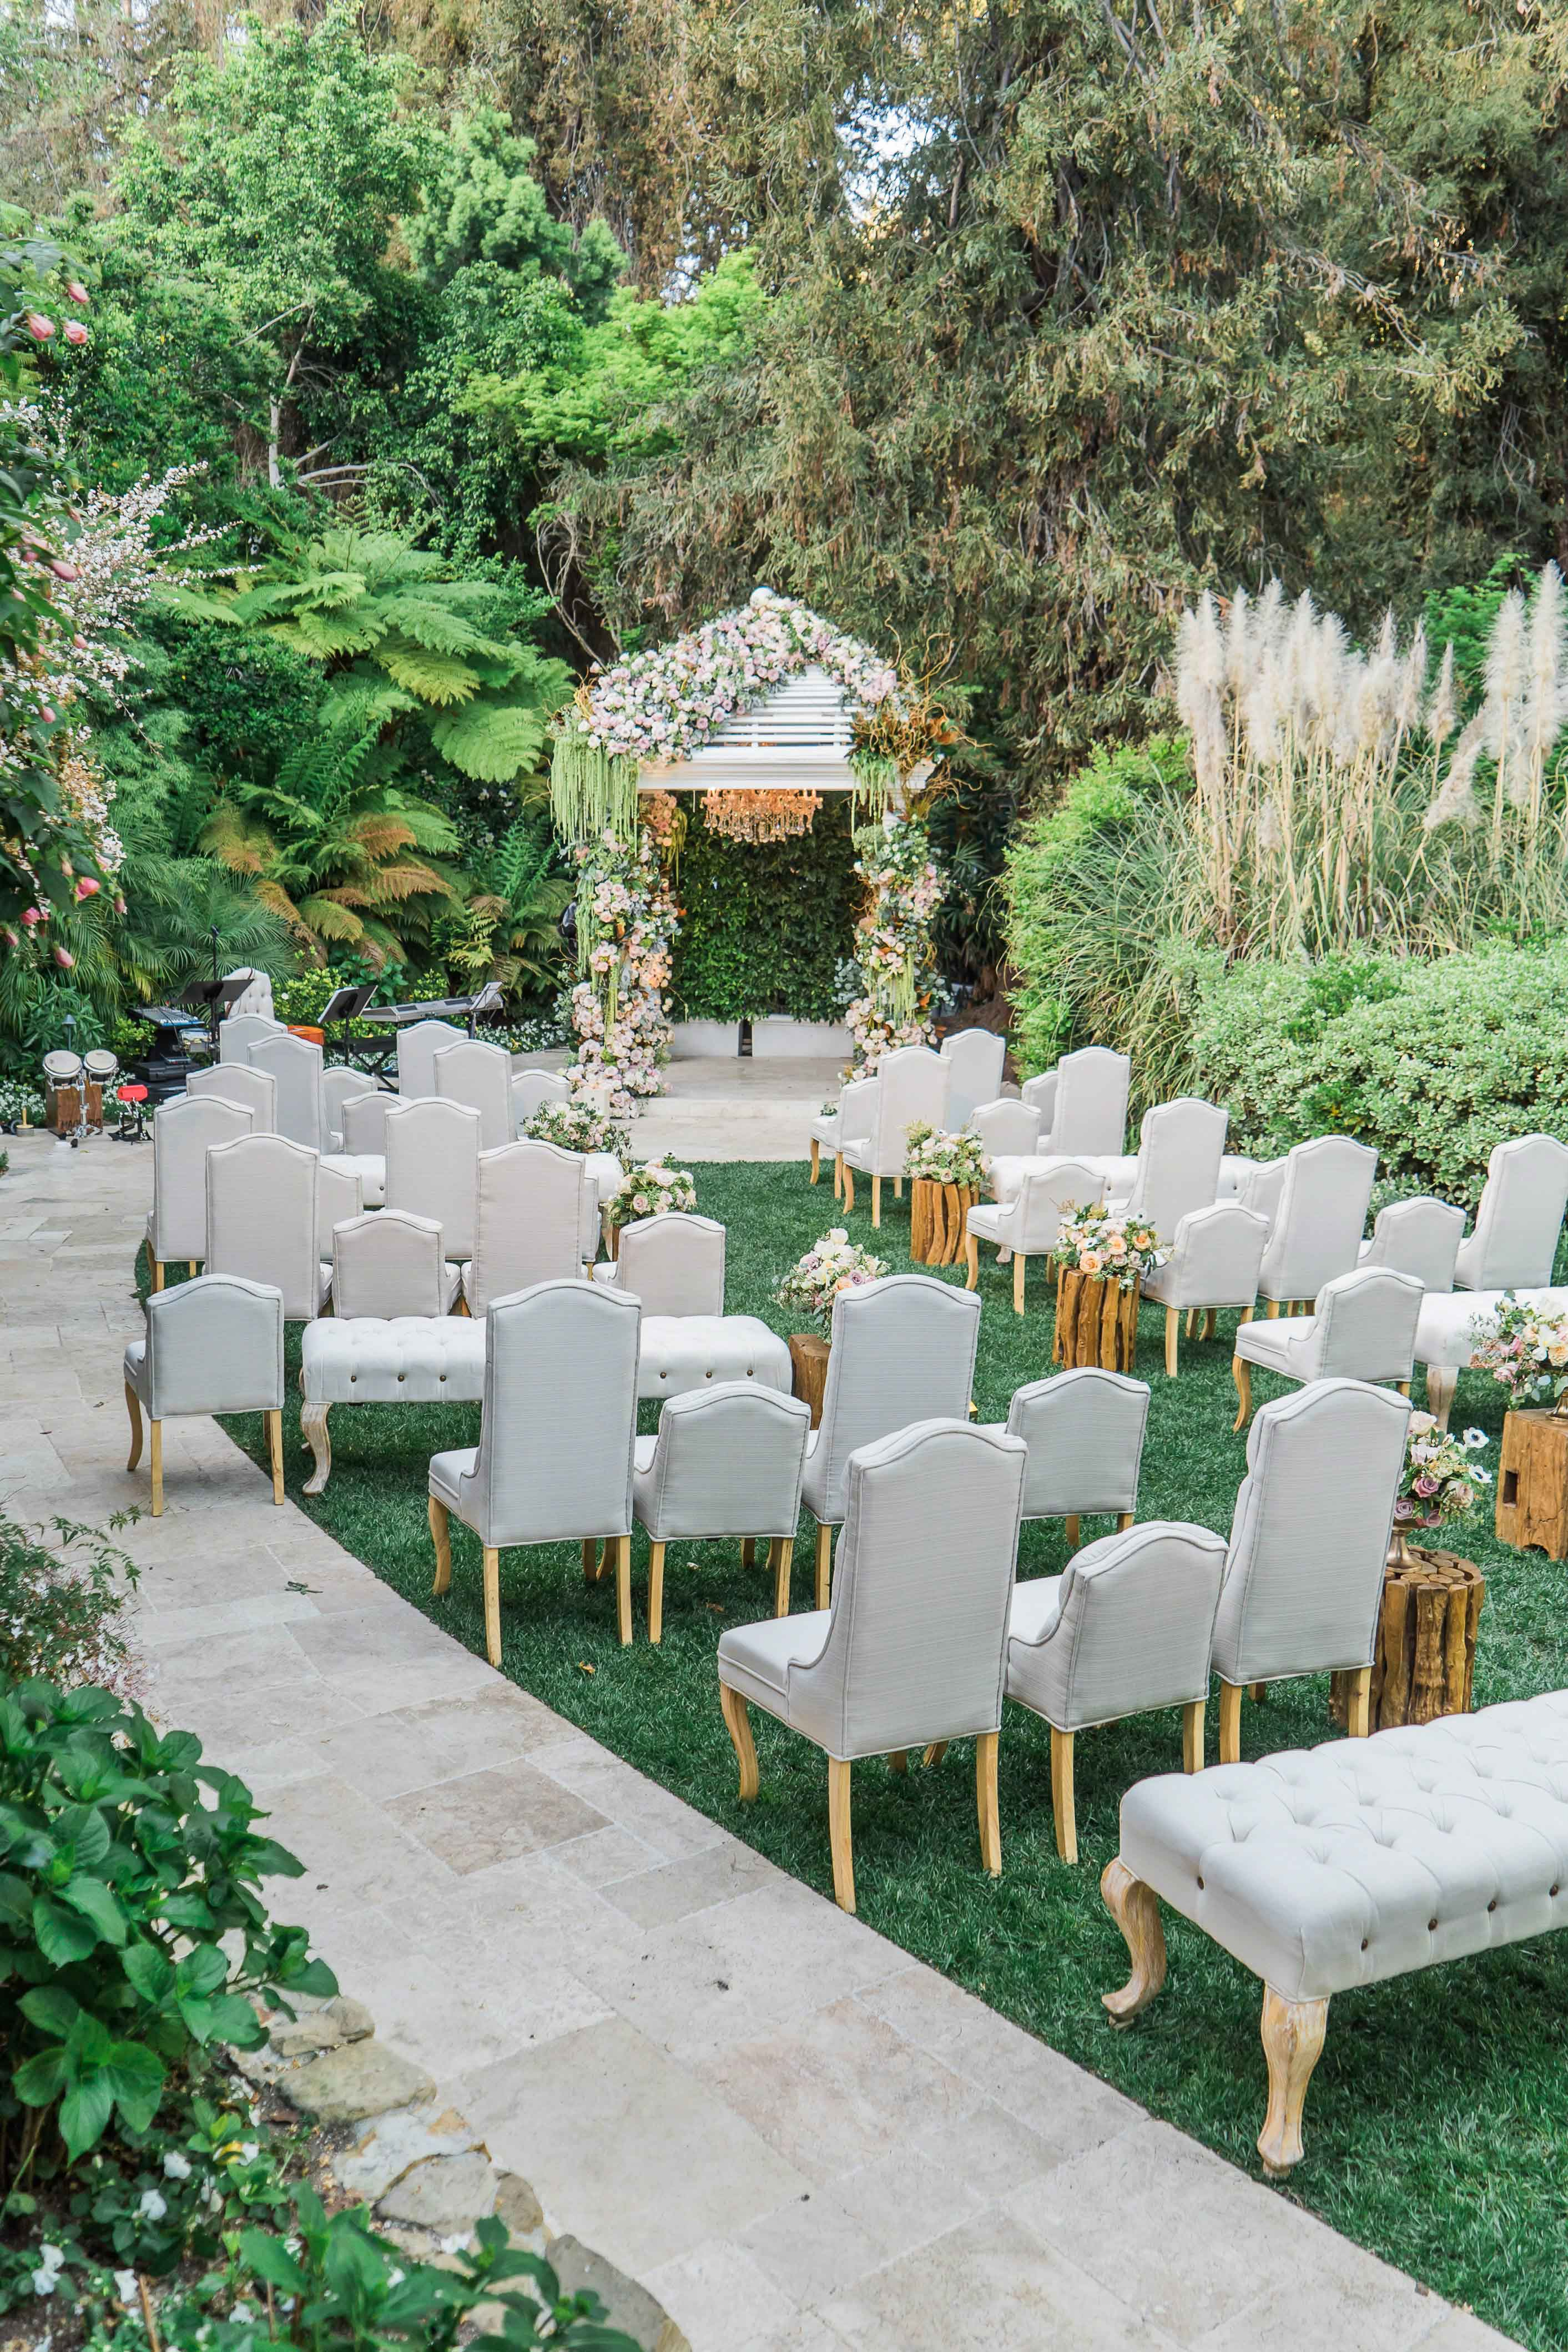 Hotel Bel-Air wedding ceremony unique seating garden wedding outdoor Inside Weddings winter 2017 issue